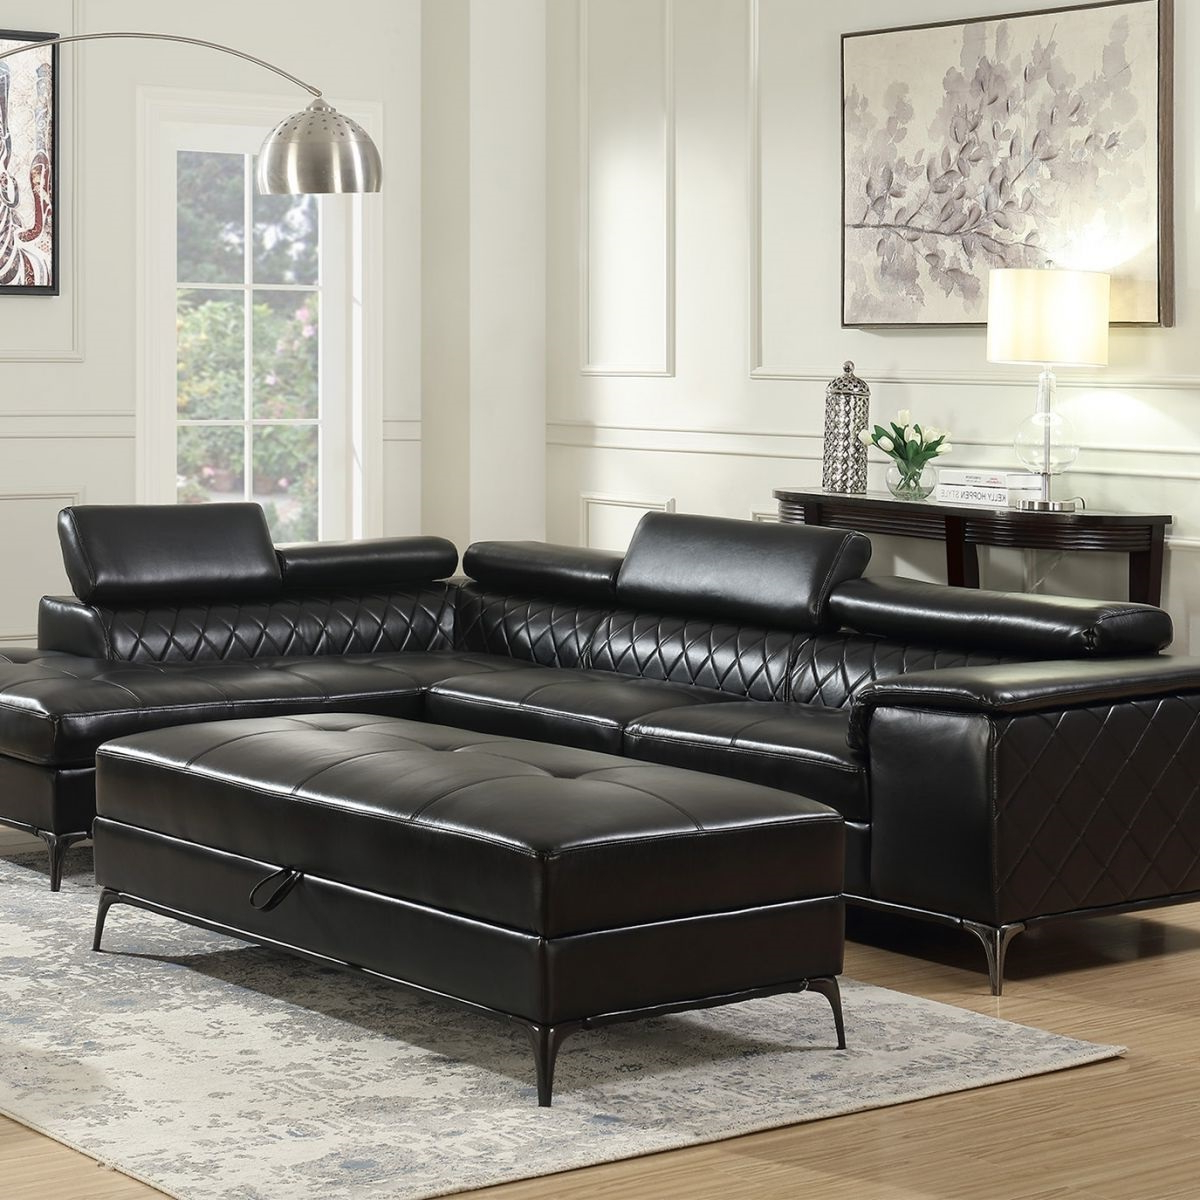 Badcock & More Throughout Cosmos Grey 2 Piece Sectionals With Raf Chaise (View 4 of 20)